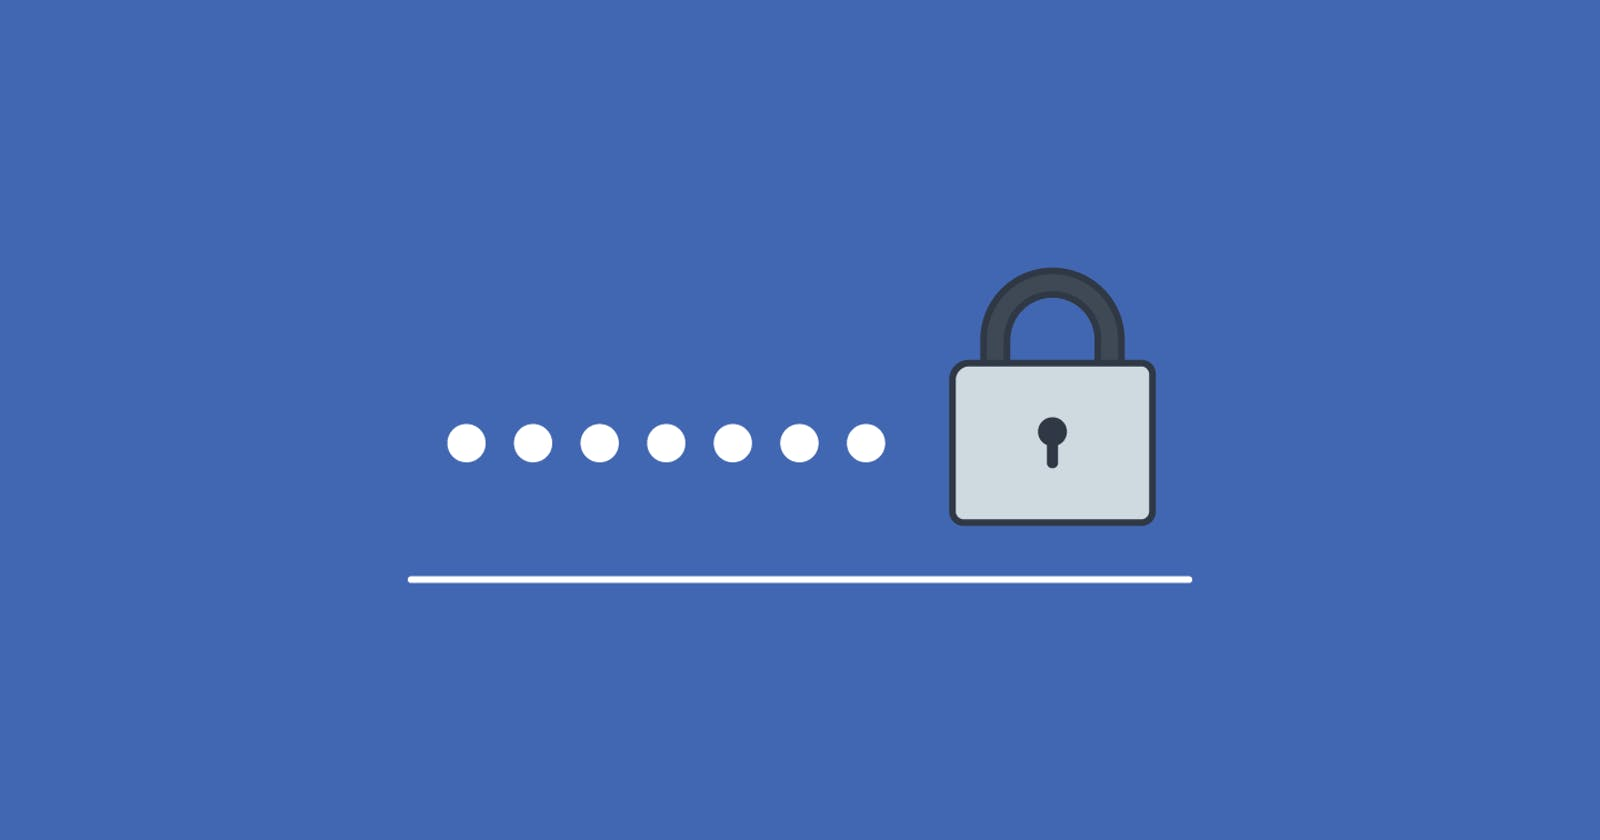 Laravel: Seed Users table and send password reset link